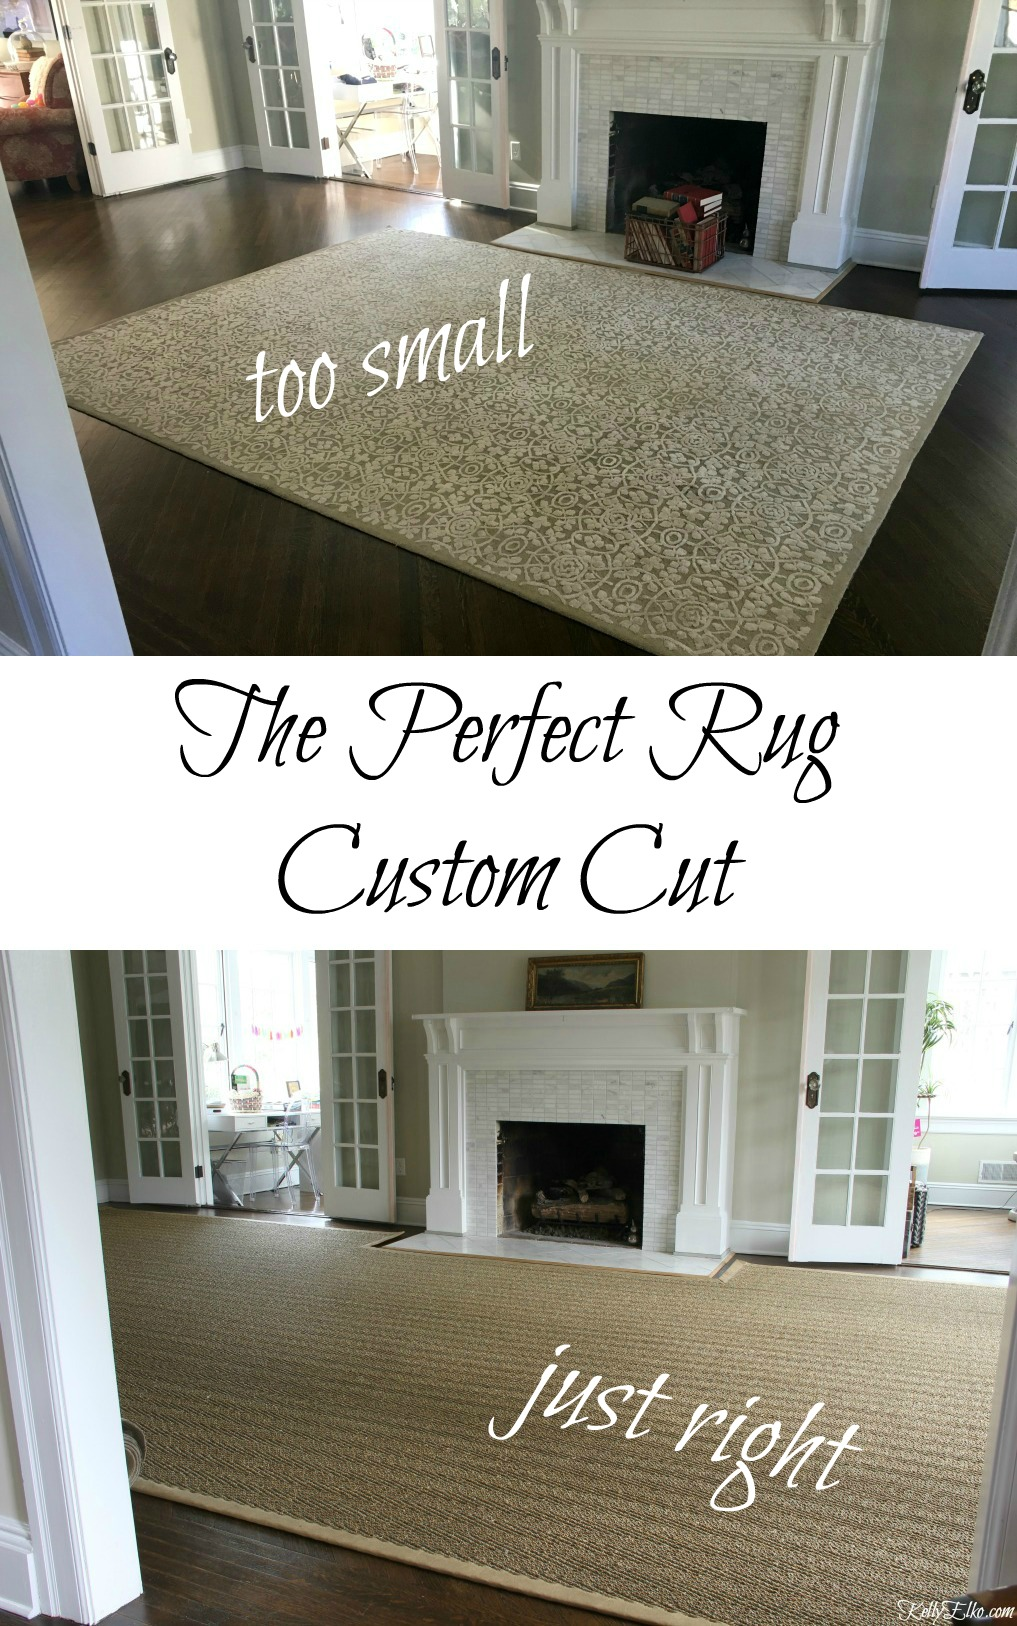 Designer Trick - get a rug custom cut to fit your room kellyelko.com #rugs #customrug #decorating #homedecor #rug #hardwoodfloors #customdecor #decoratingtips